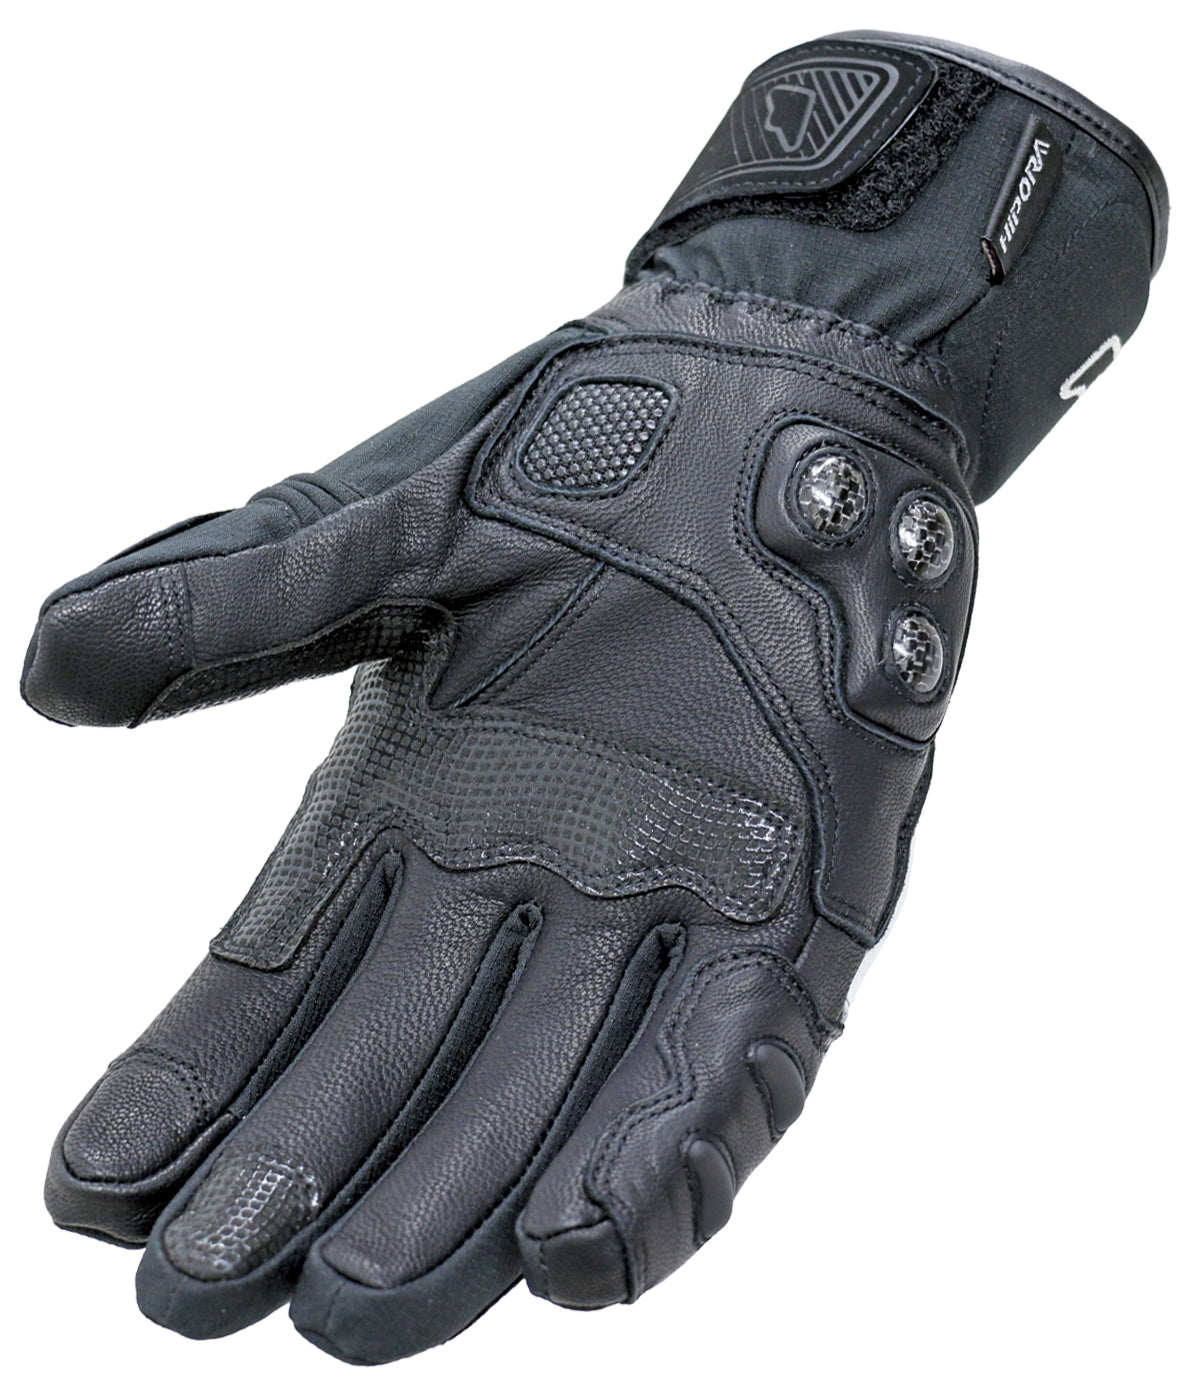 WS6 Gloves (short sleeved glove)